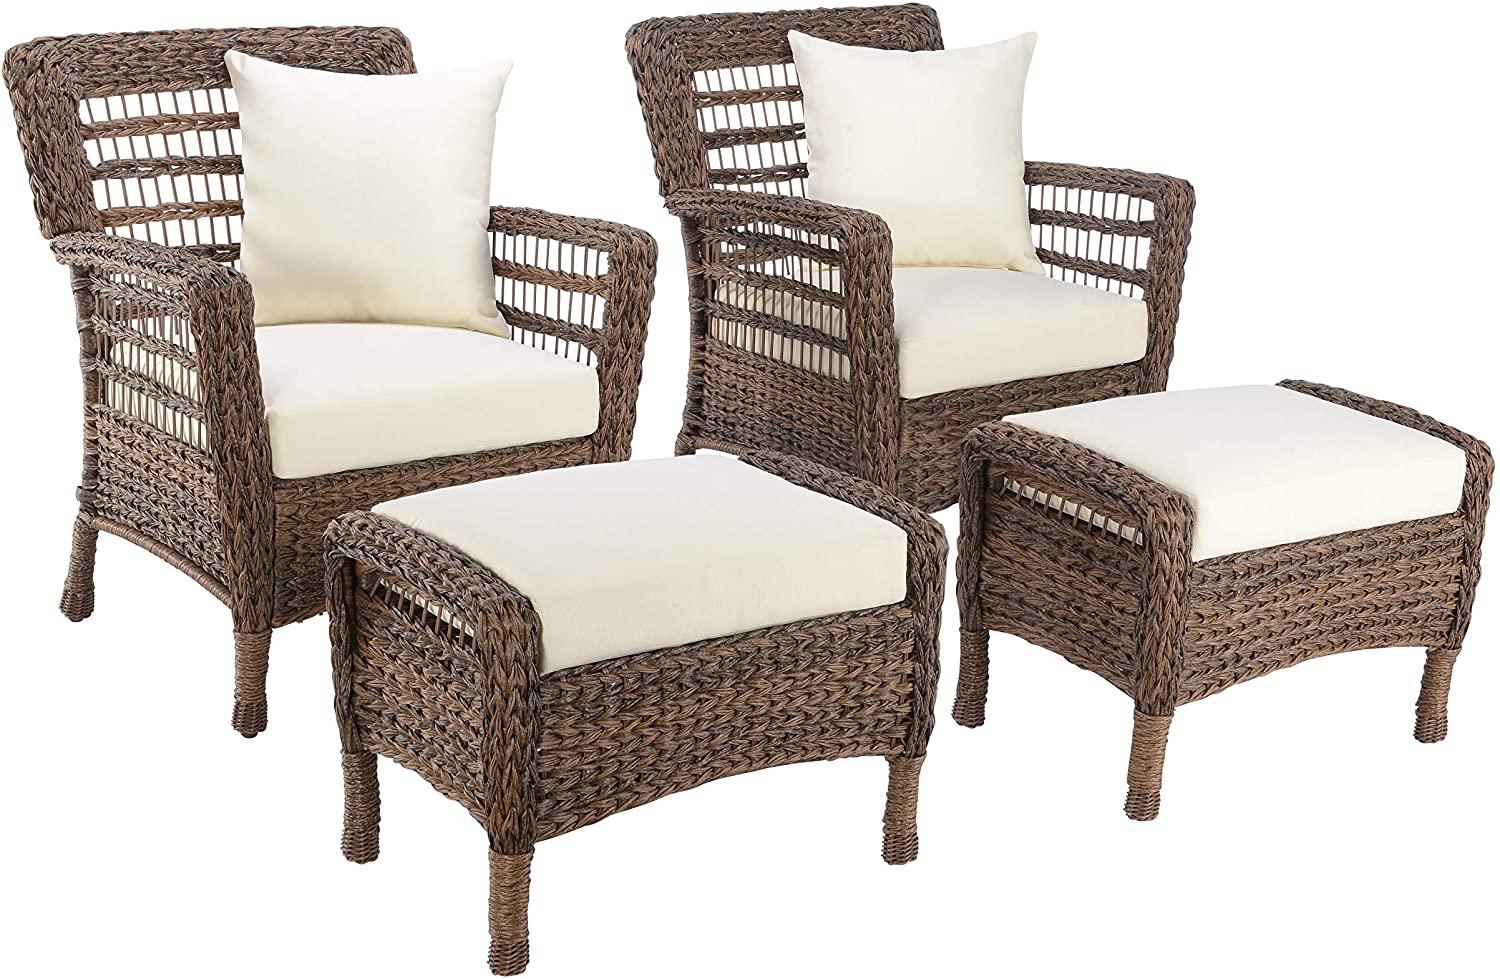 Outdoor Garden Patio Hand Woven Wicker Faux Sea Wrack Brown 2 Chairs Set with 2 Ottomans